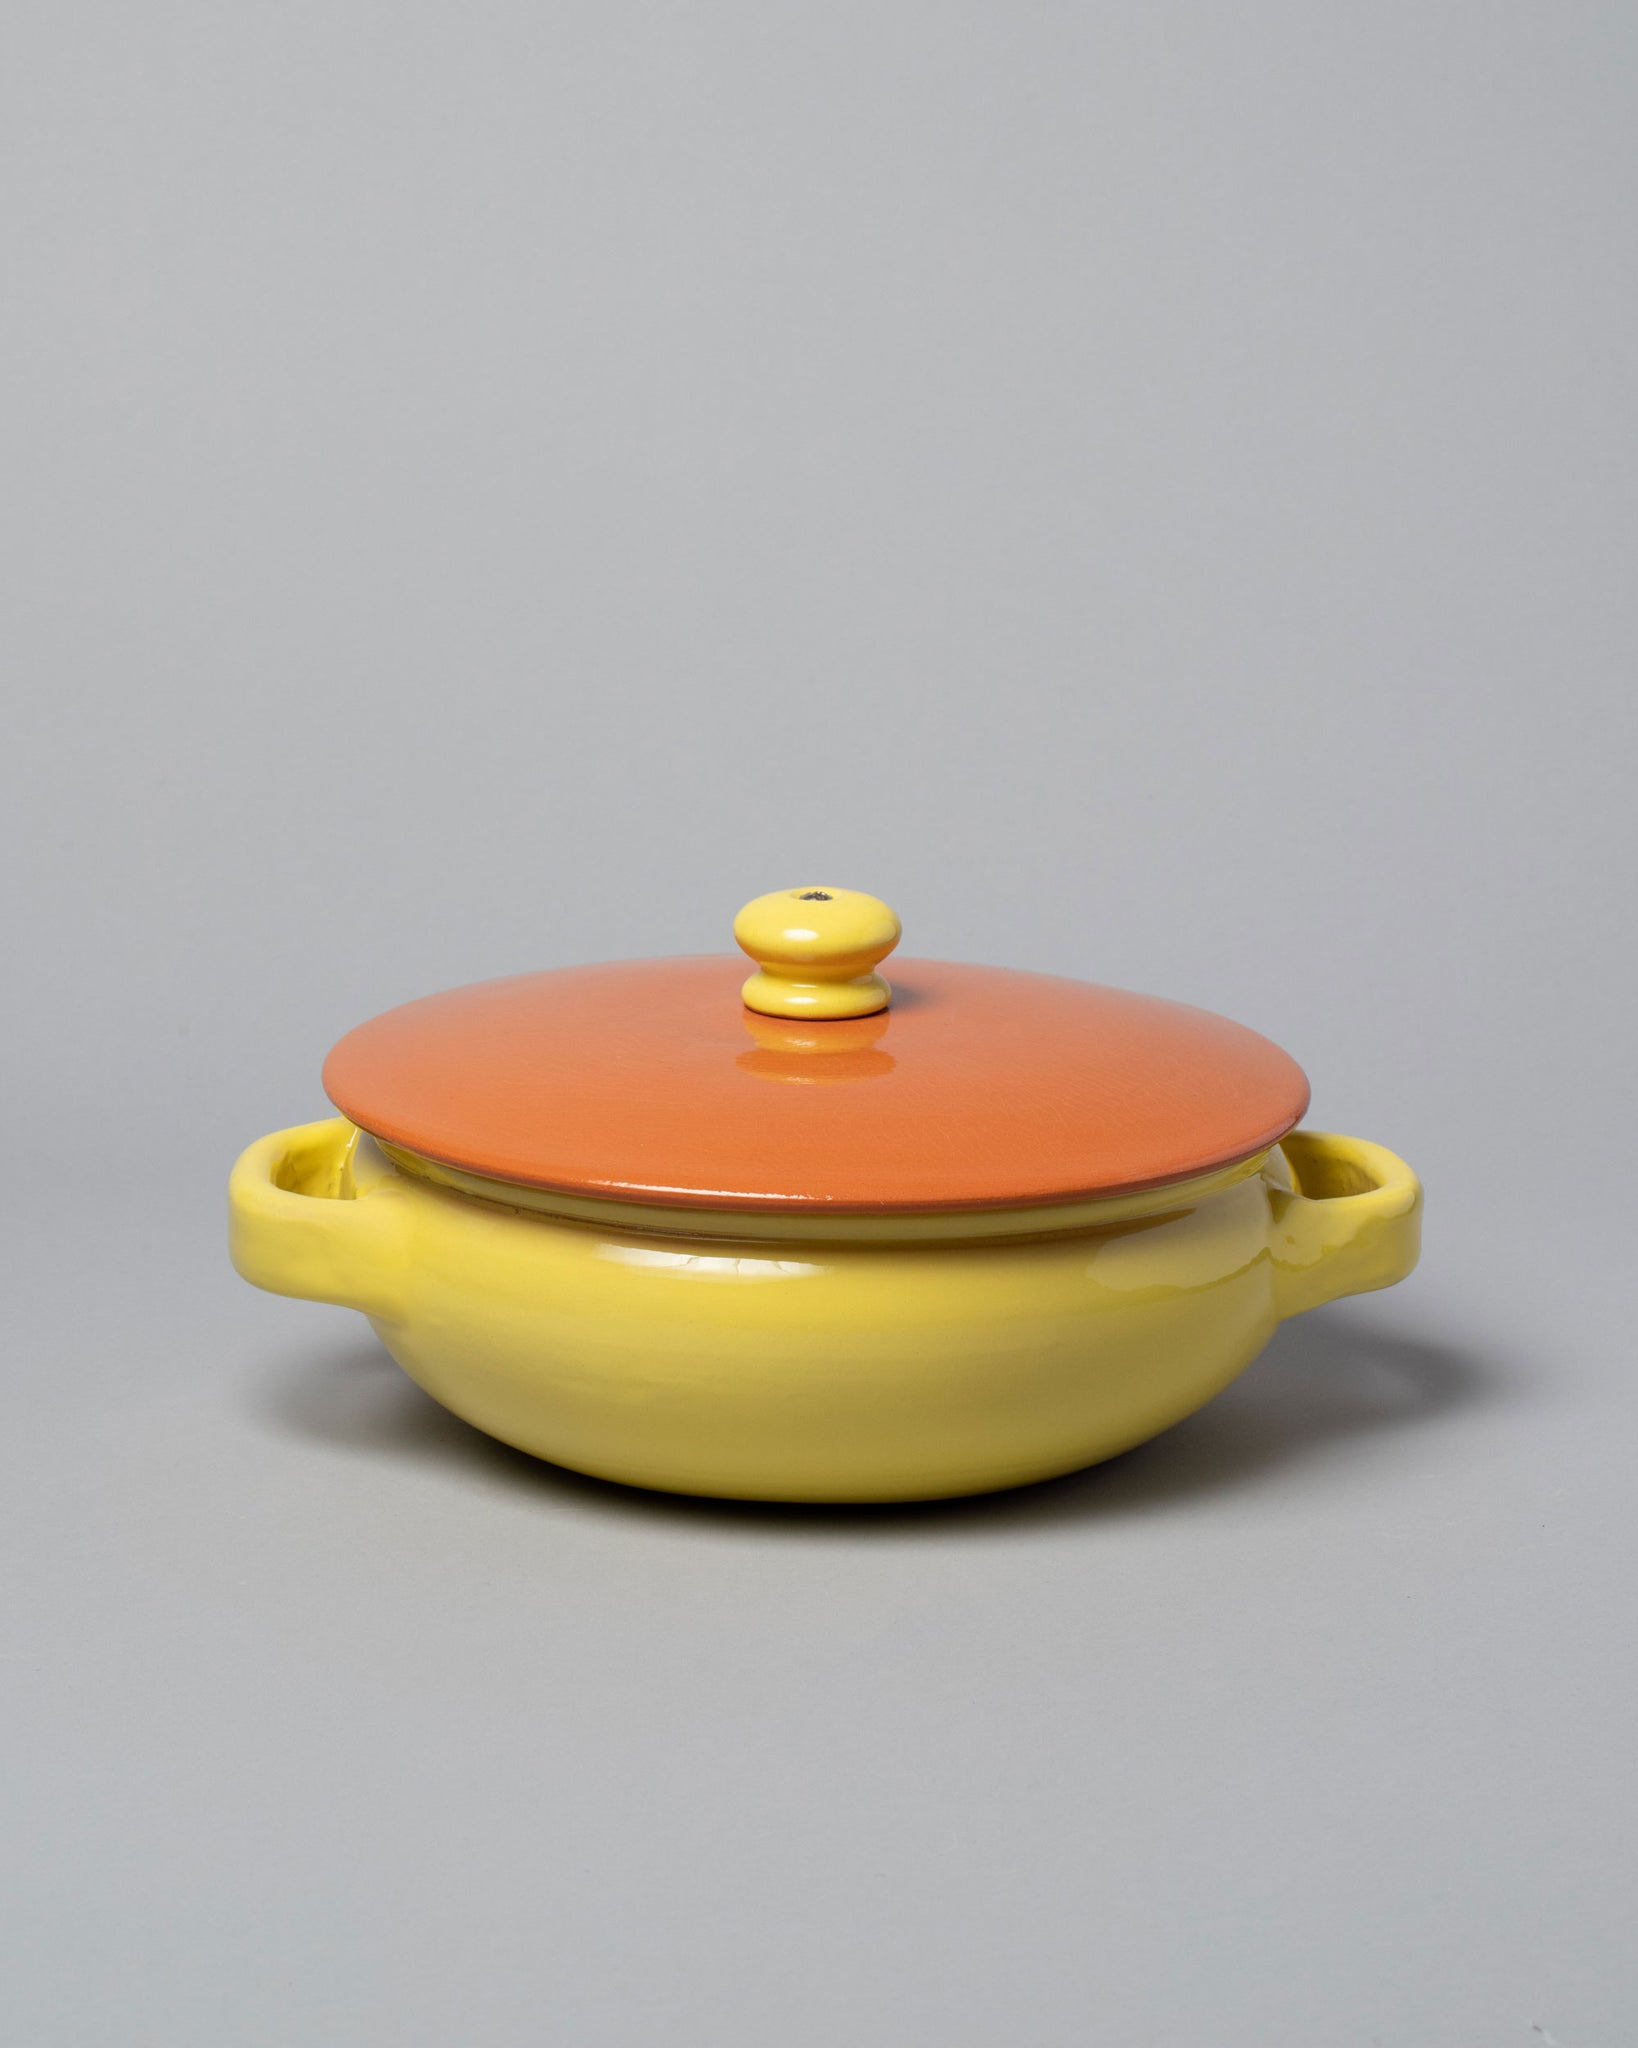 Mazzotti 1903 Clay Pot Small / Yellow and Orange